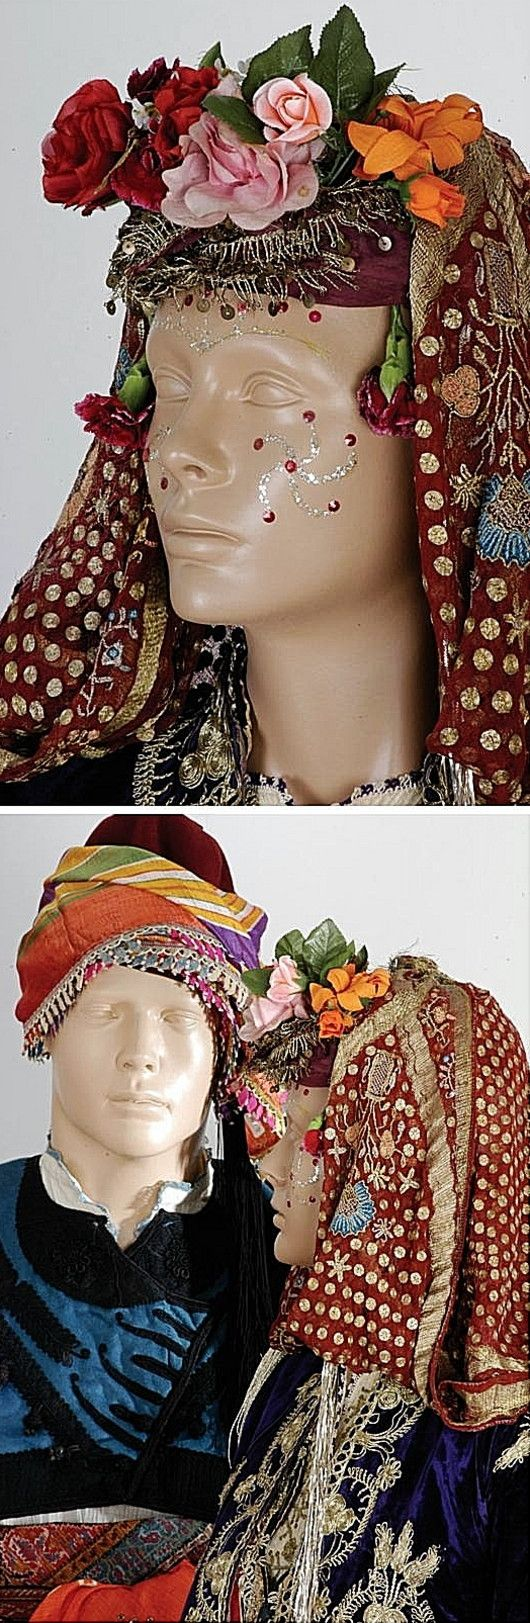 Traditional bridal headgear and facial adornment from the Bodrum area (Muğla province), ca. 1900-1925.